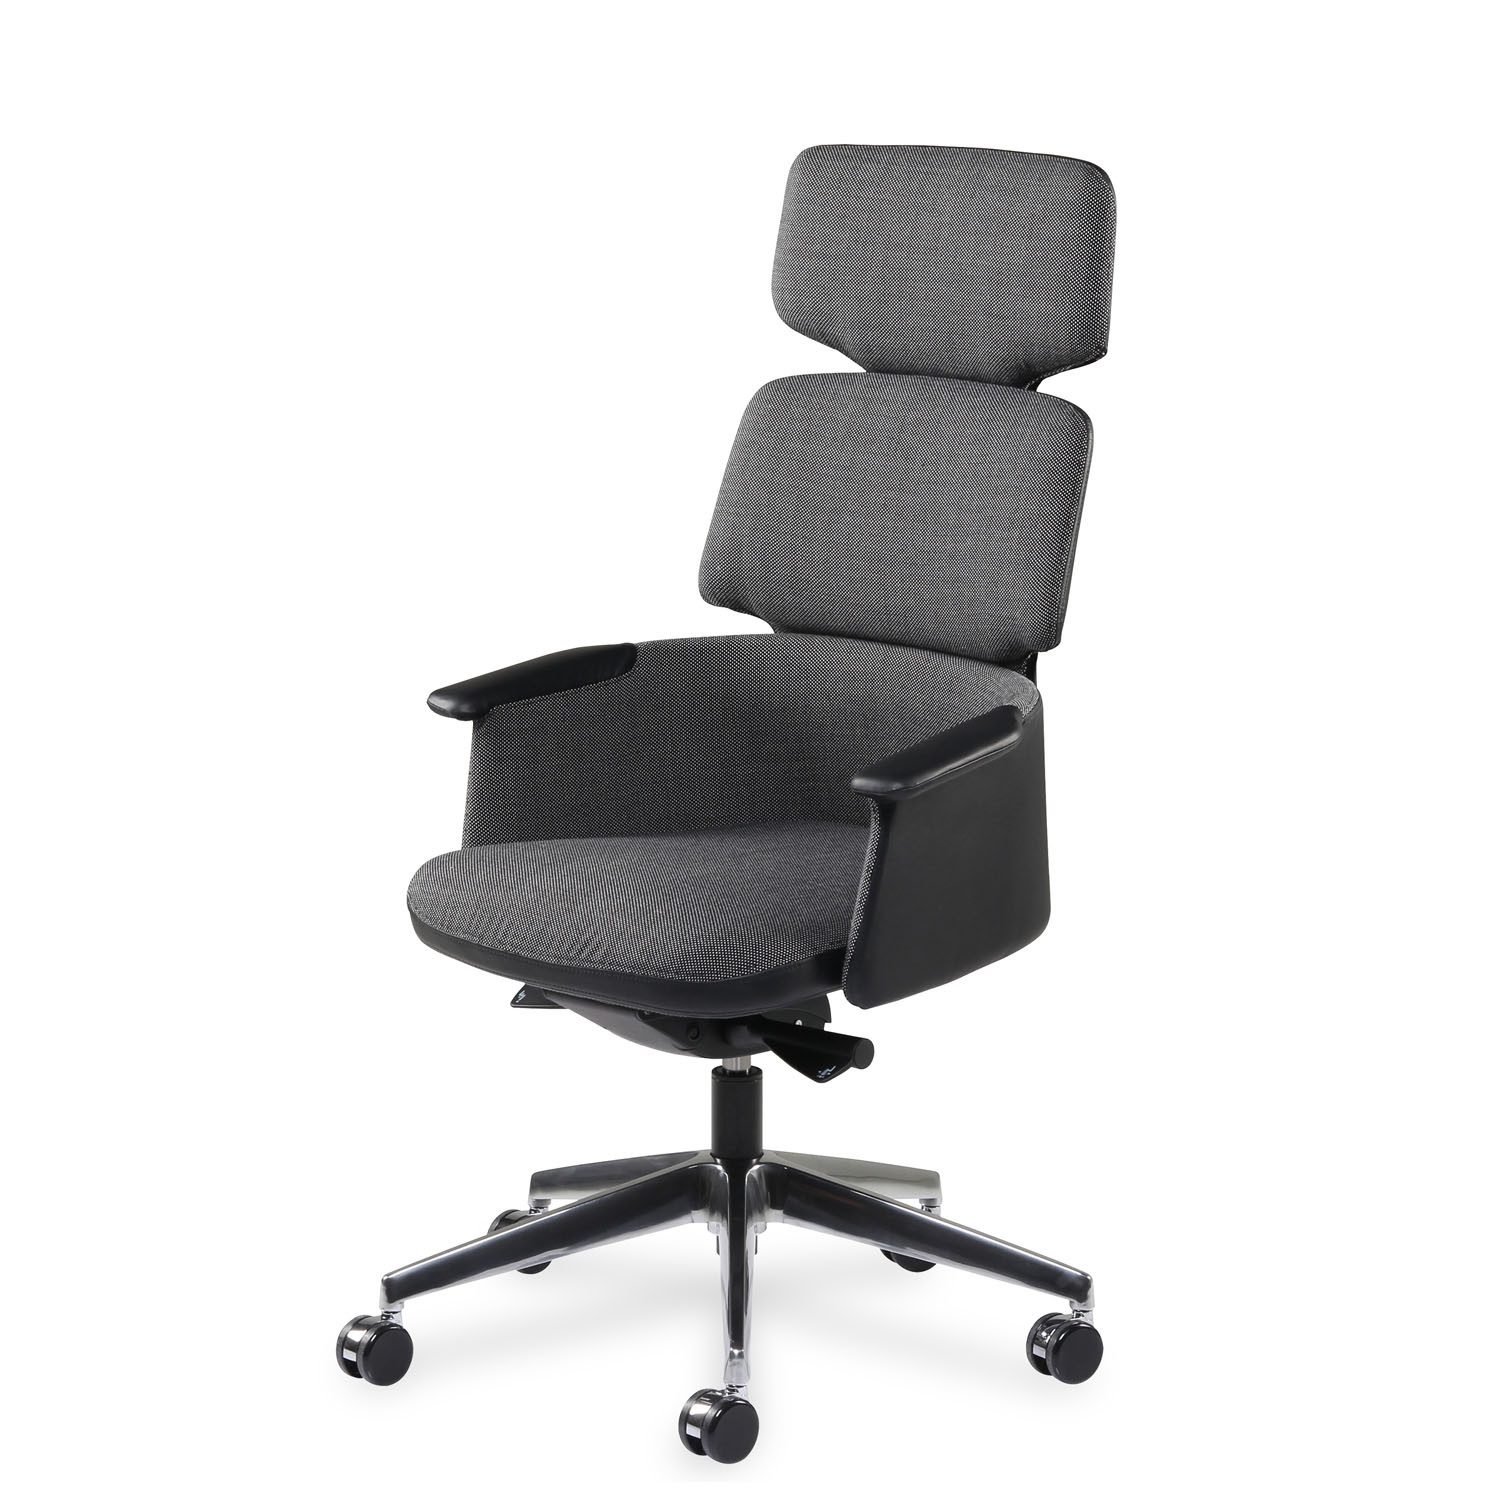 Tola Executive High Back Chairs